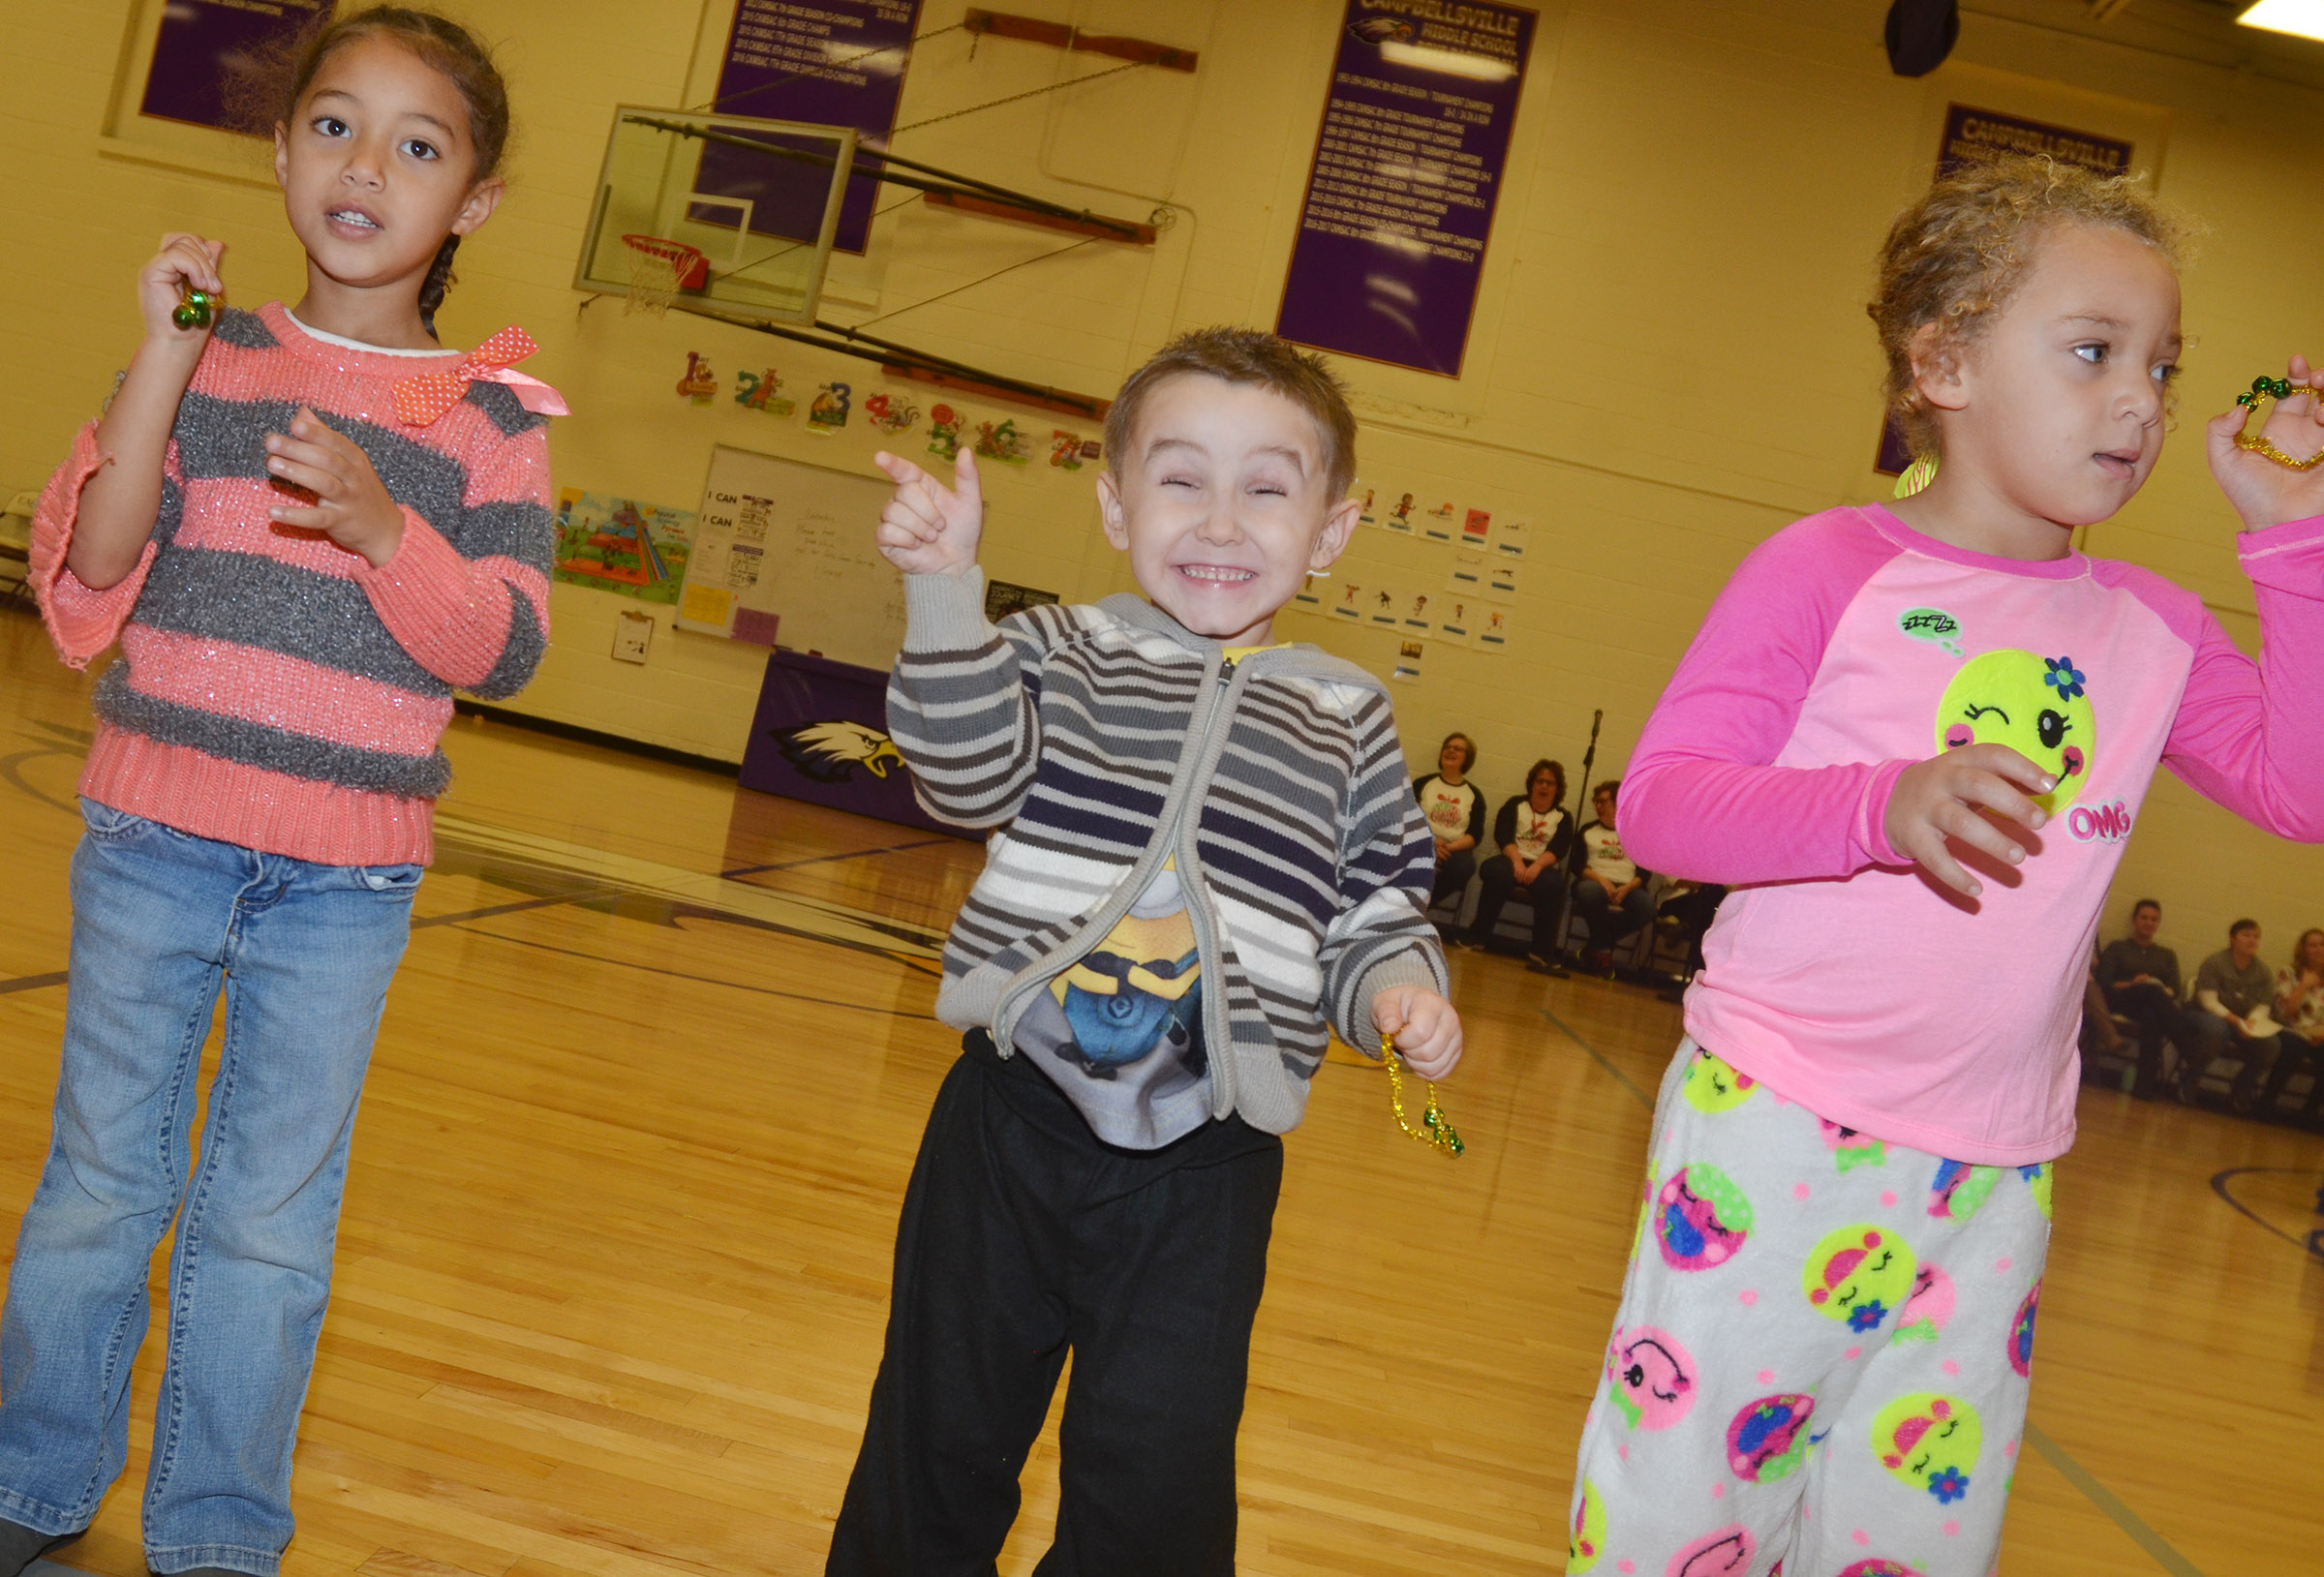 CES preschool students, from left, Onyx Hunter, Noelan McMahan and Jayla Barbee perform with their classmates.